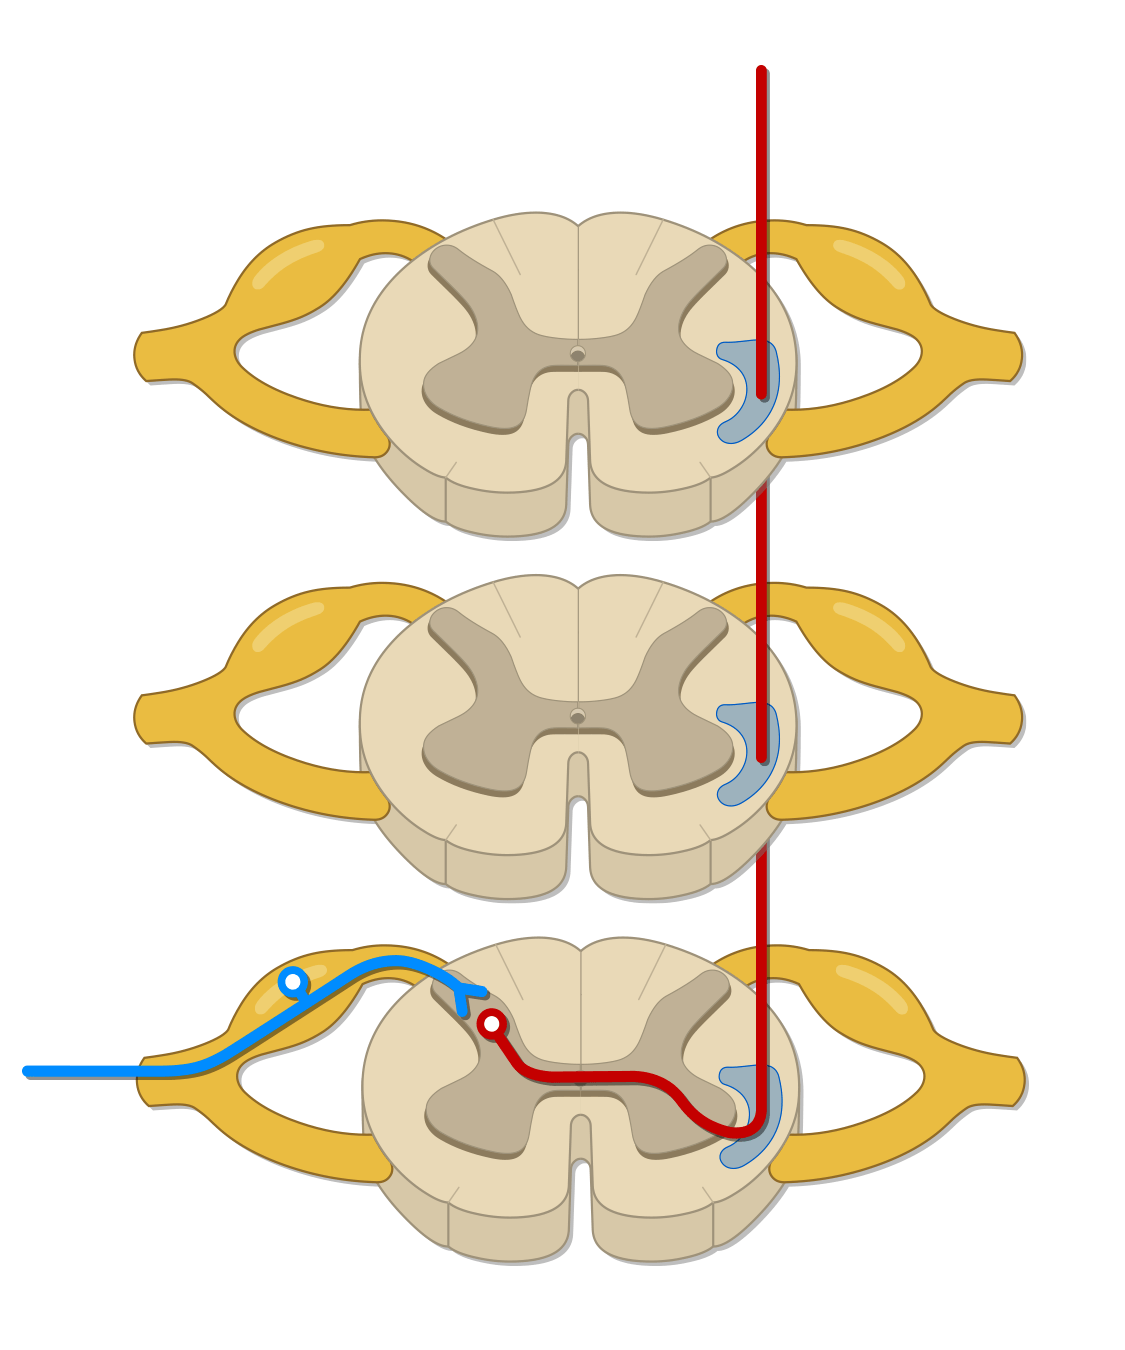 Spinothalamic tract - verson 2